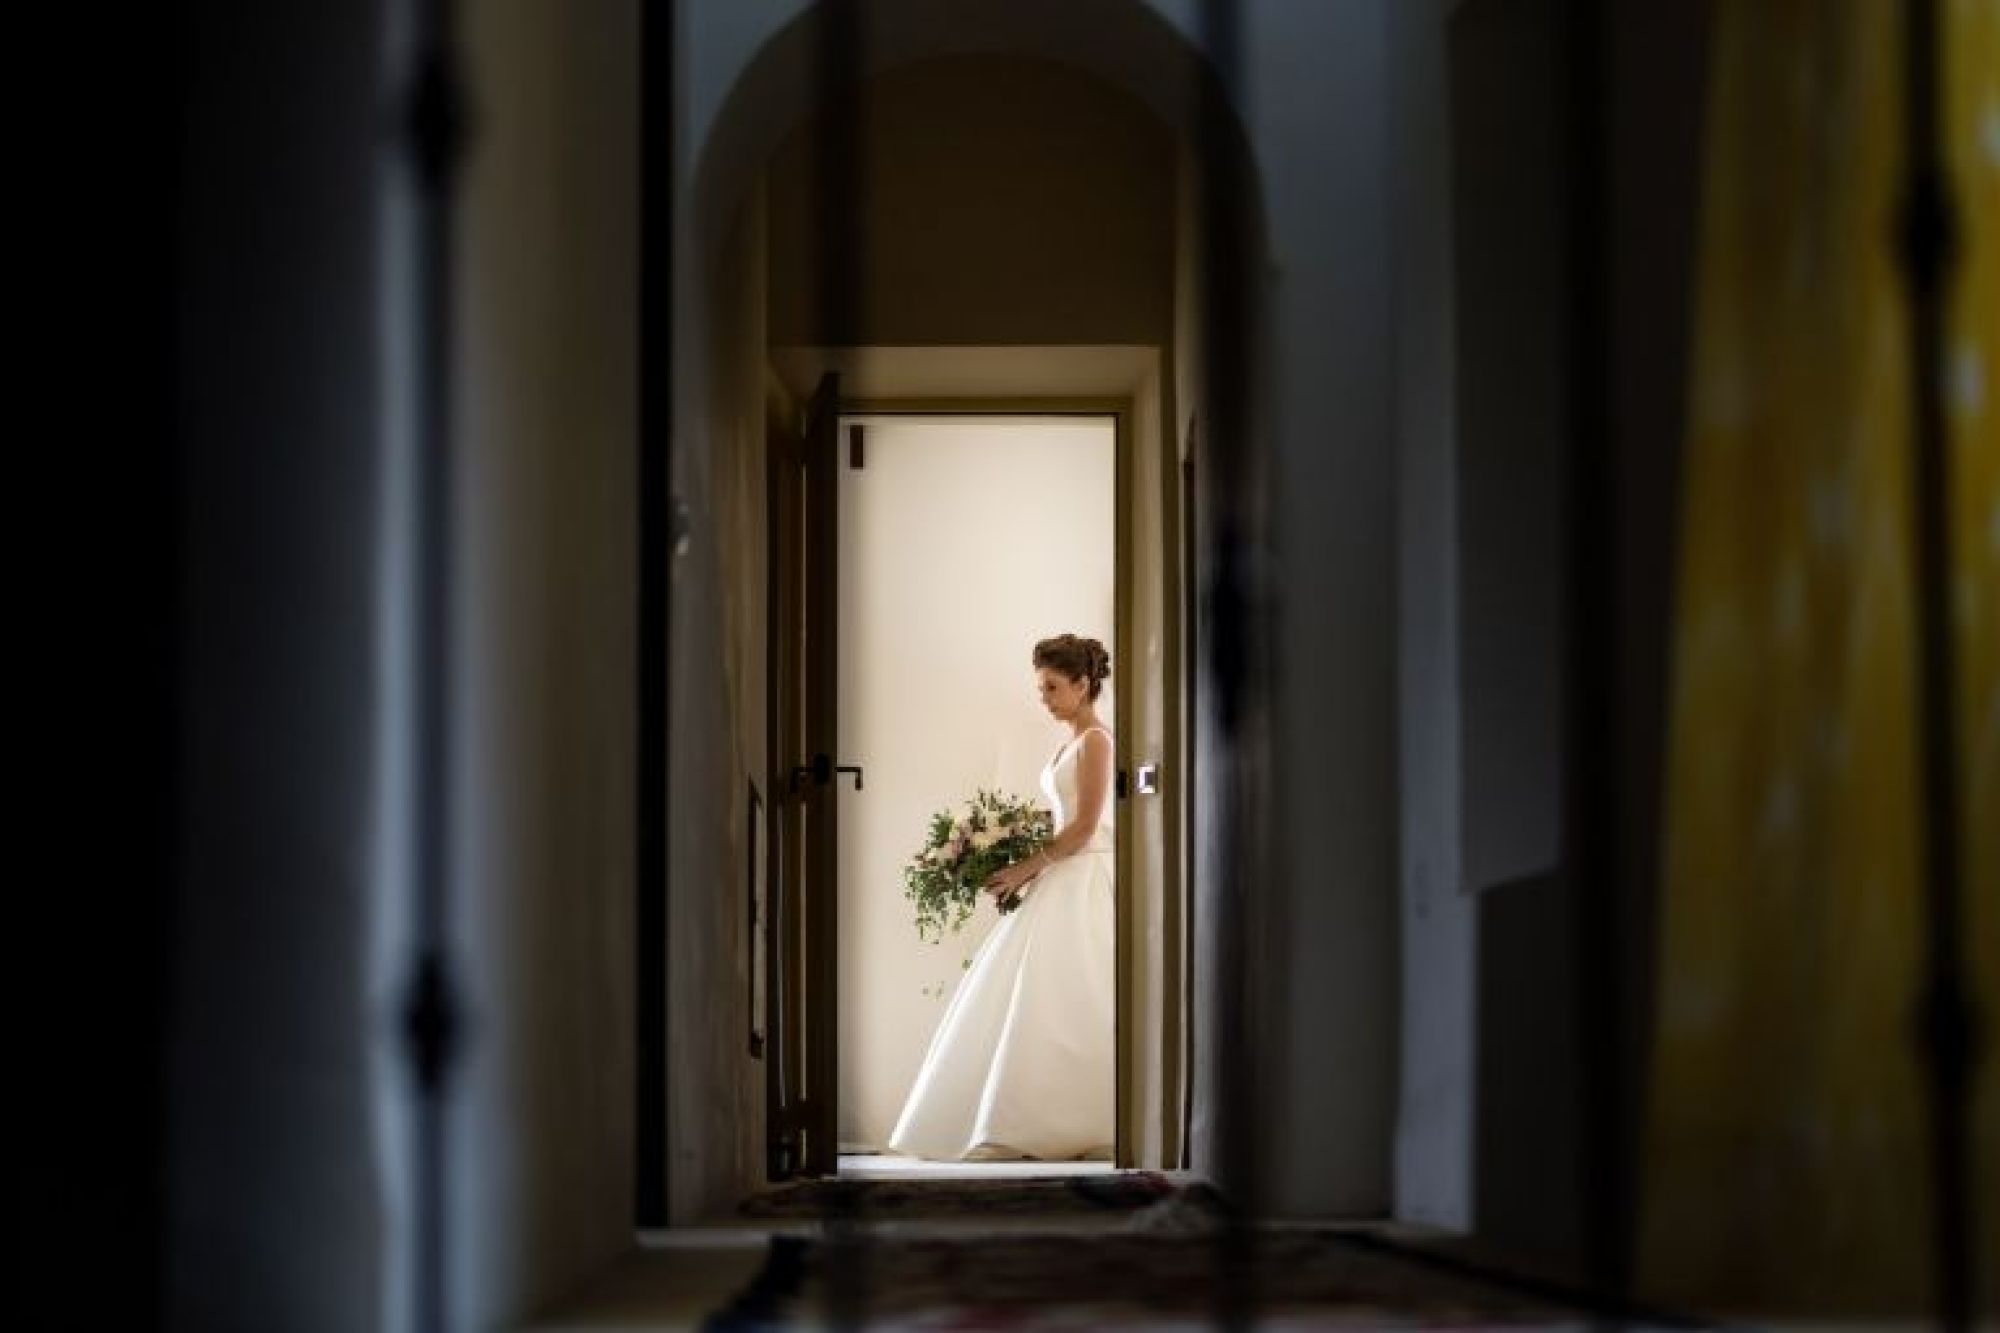 Bride ready to get married at Pedruxella Gran in Mallorca